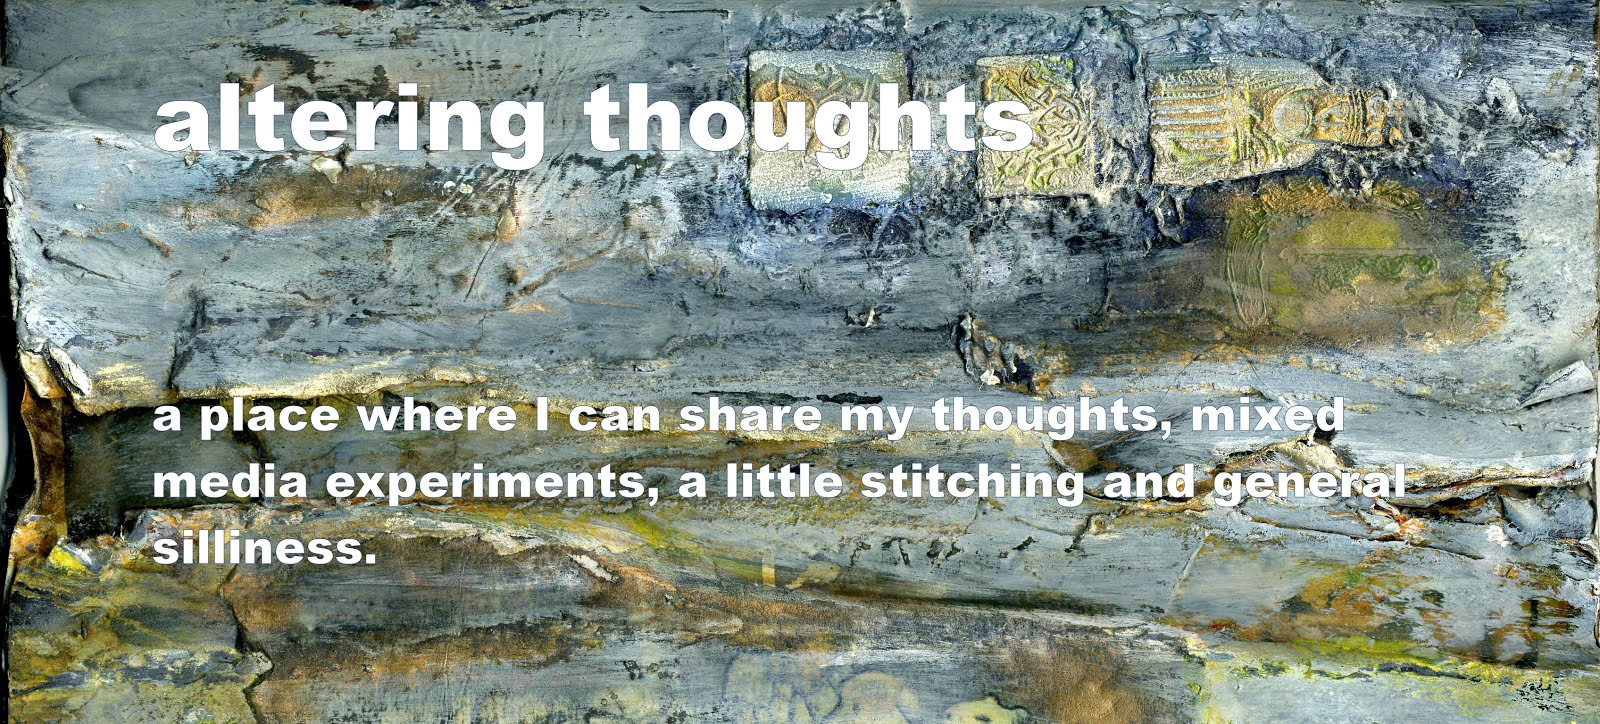 altering thoughts